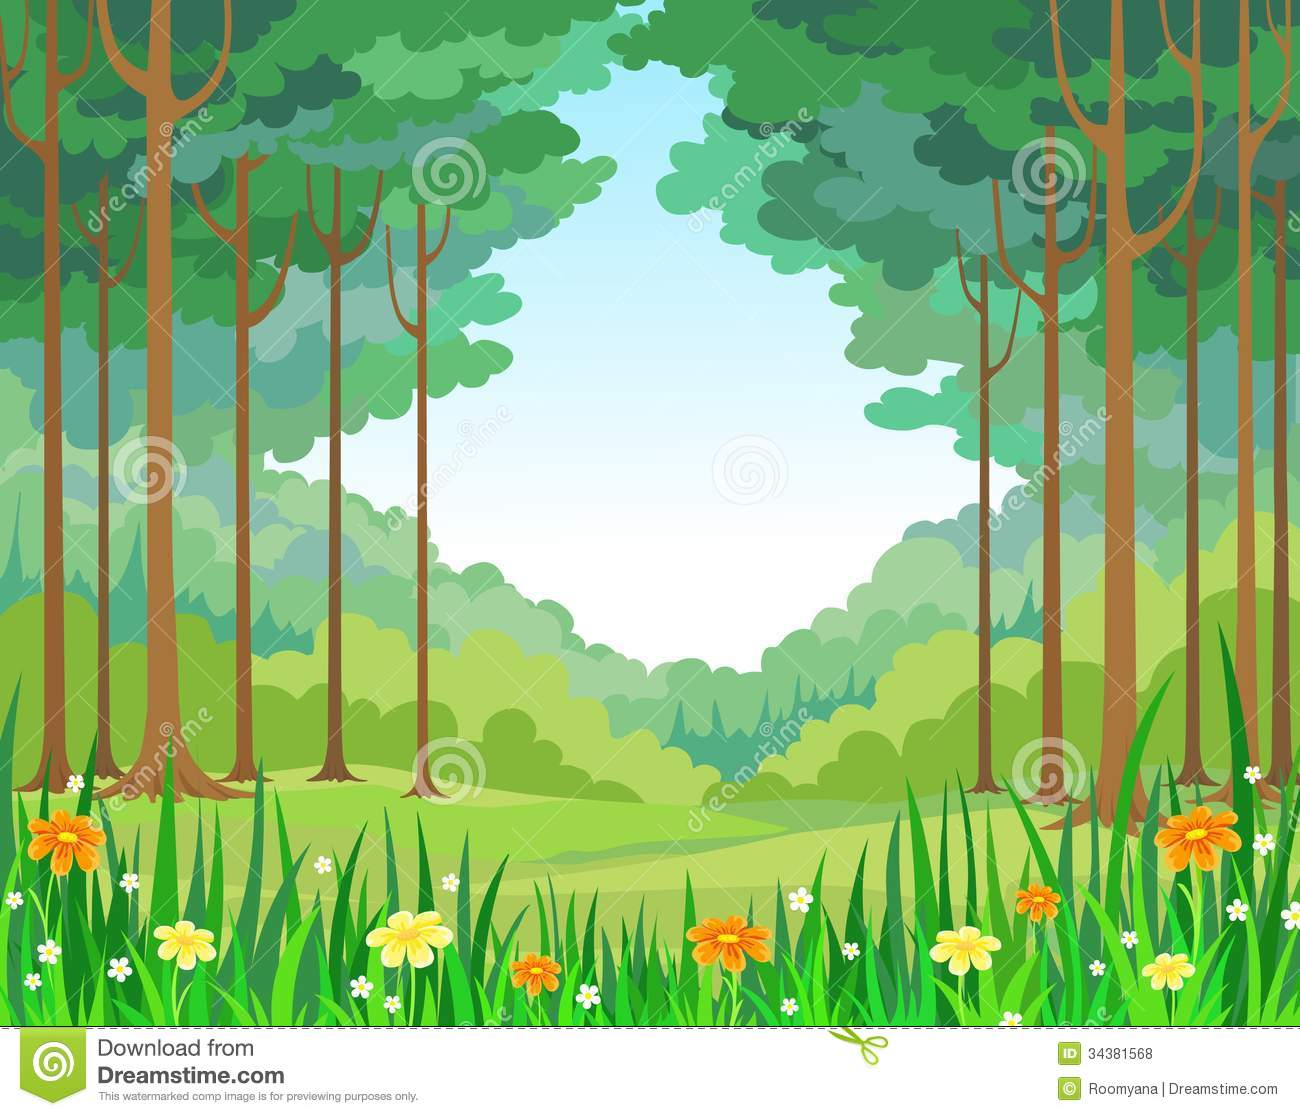 Forest Background Clipart Vector Backgro-Forest Background Clipart Vector Background Forest-6